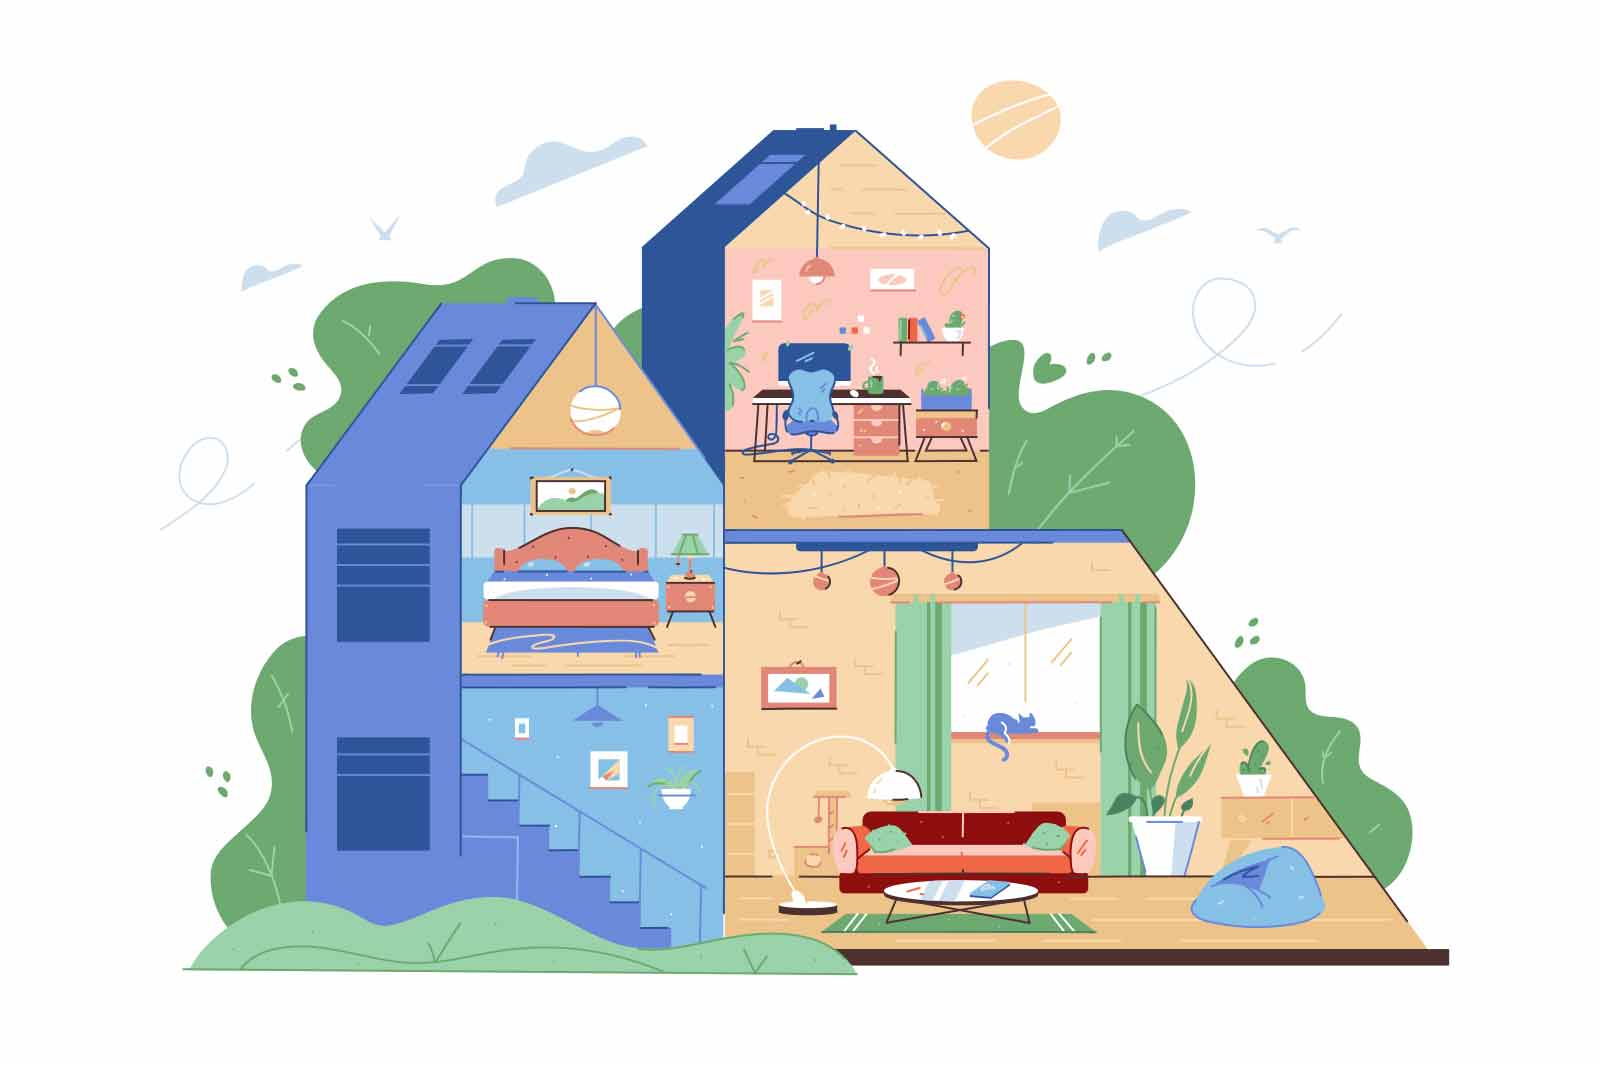 Well equipped house in nature vector illustration. Modern room interior with furniture flat style. Exterior, architecture, moving concept